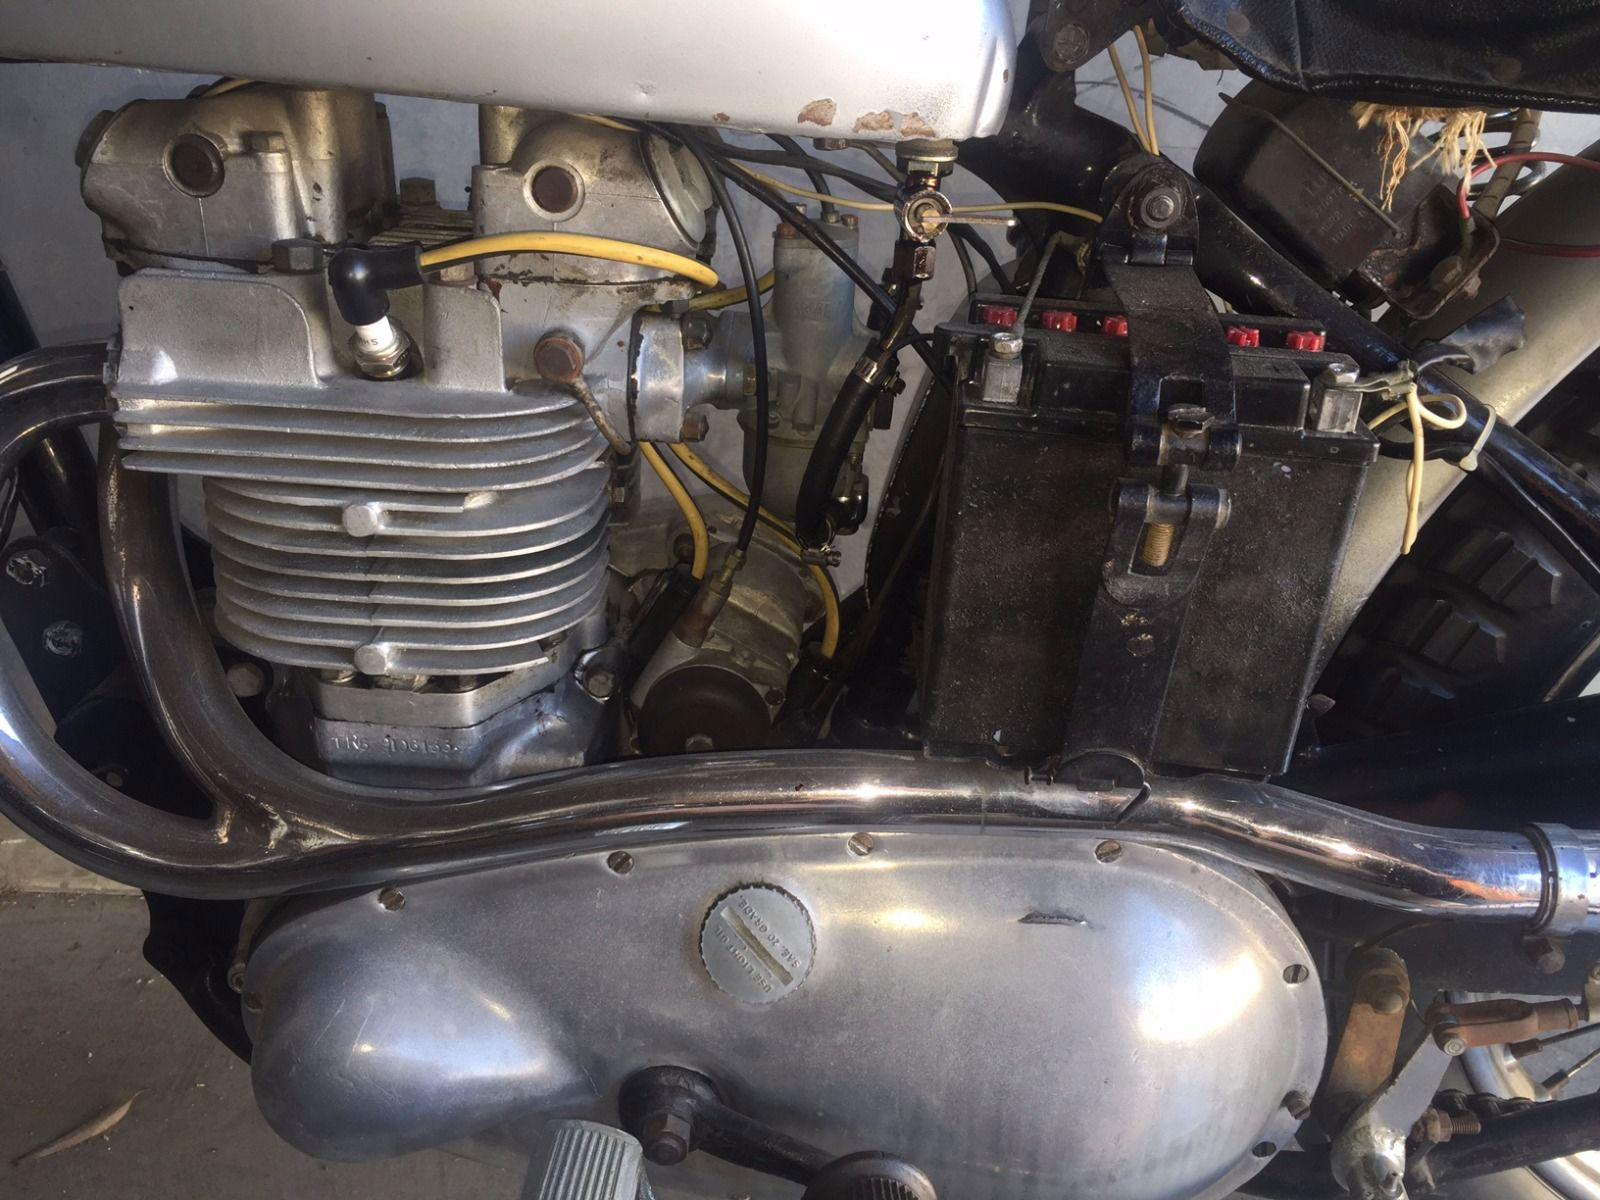 Fonzies-Happy-Days-Televison-Series-Triumph-Motorcycle-1a